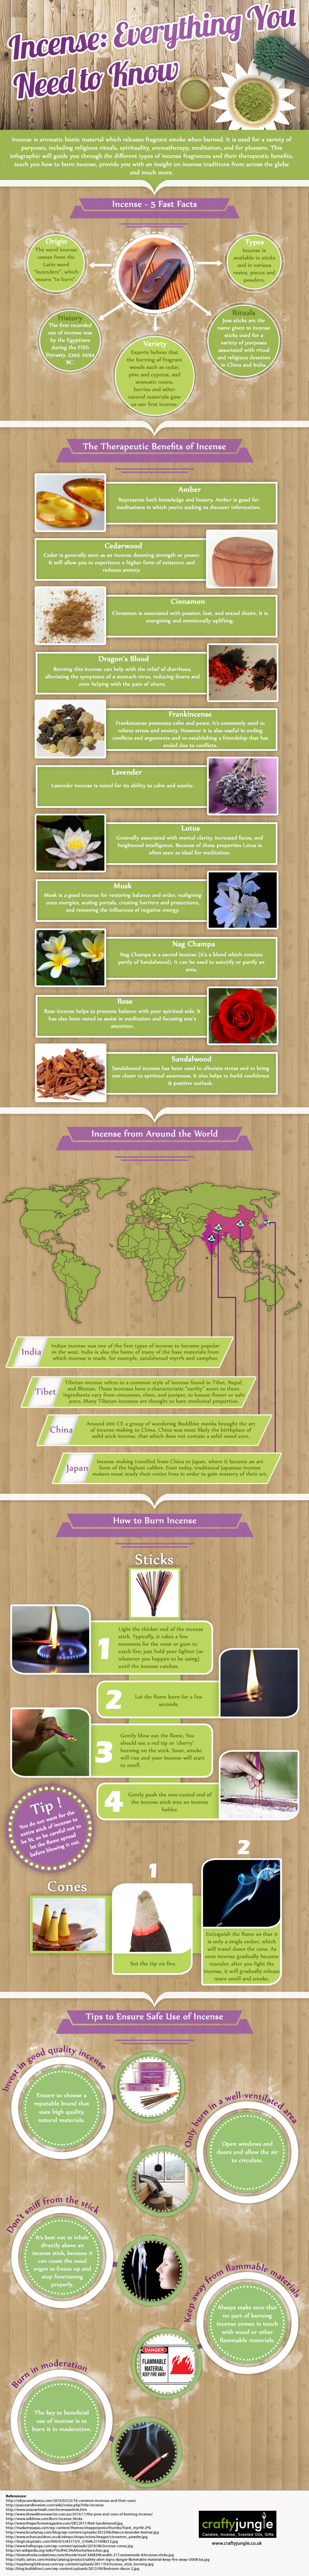 Incense: Everything You Need to Know  Infographic